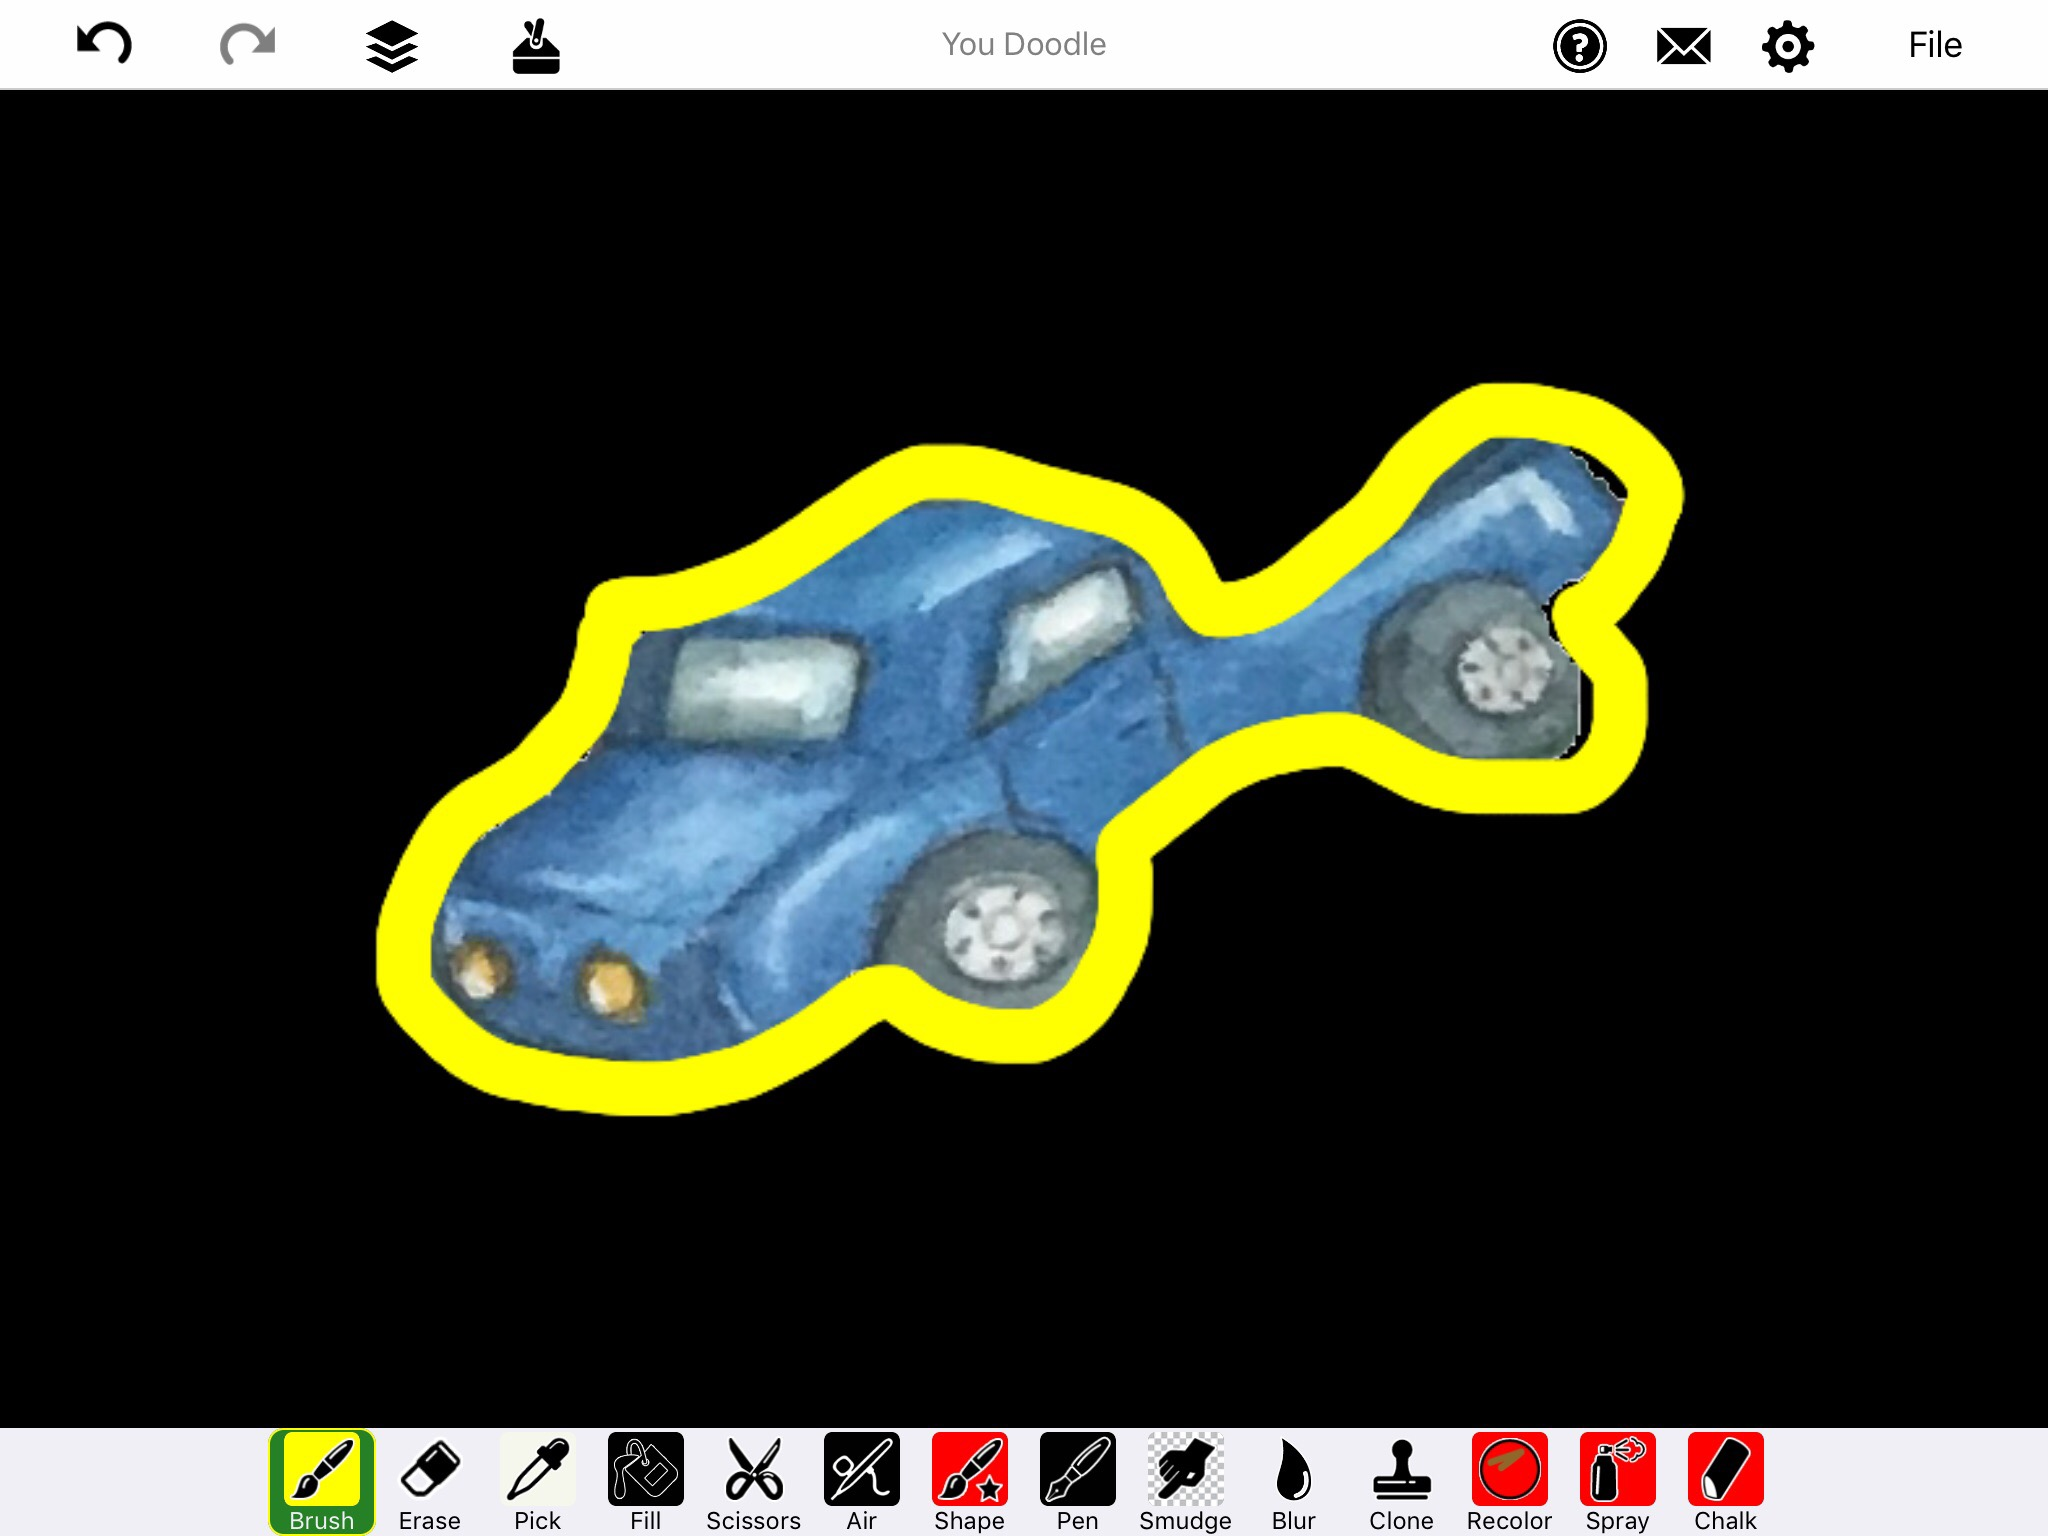 Screenshot of You Doodle app with blue truck with less Glow yellow outline on black background.